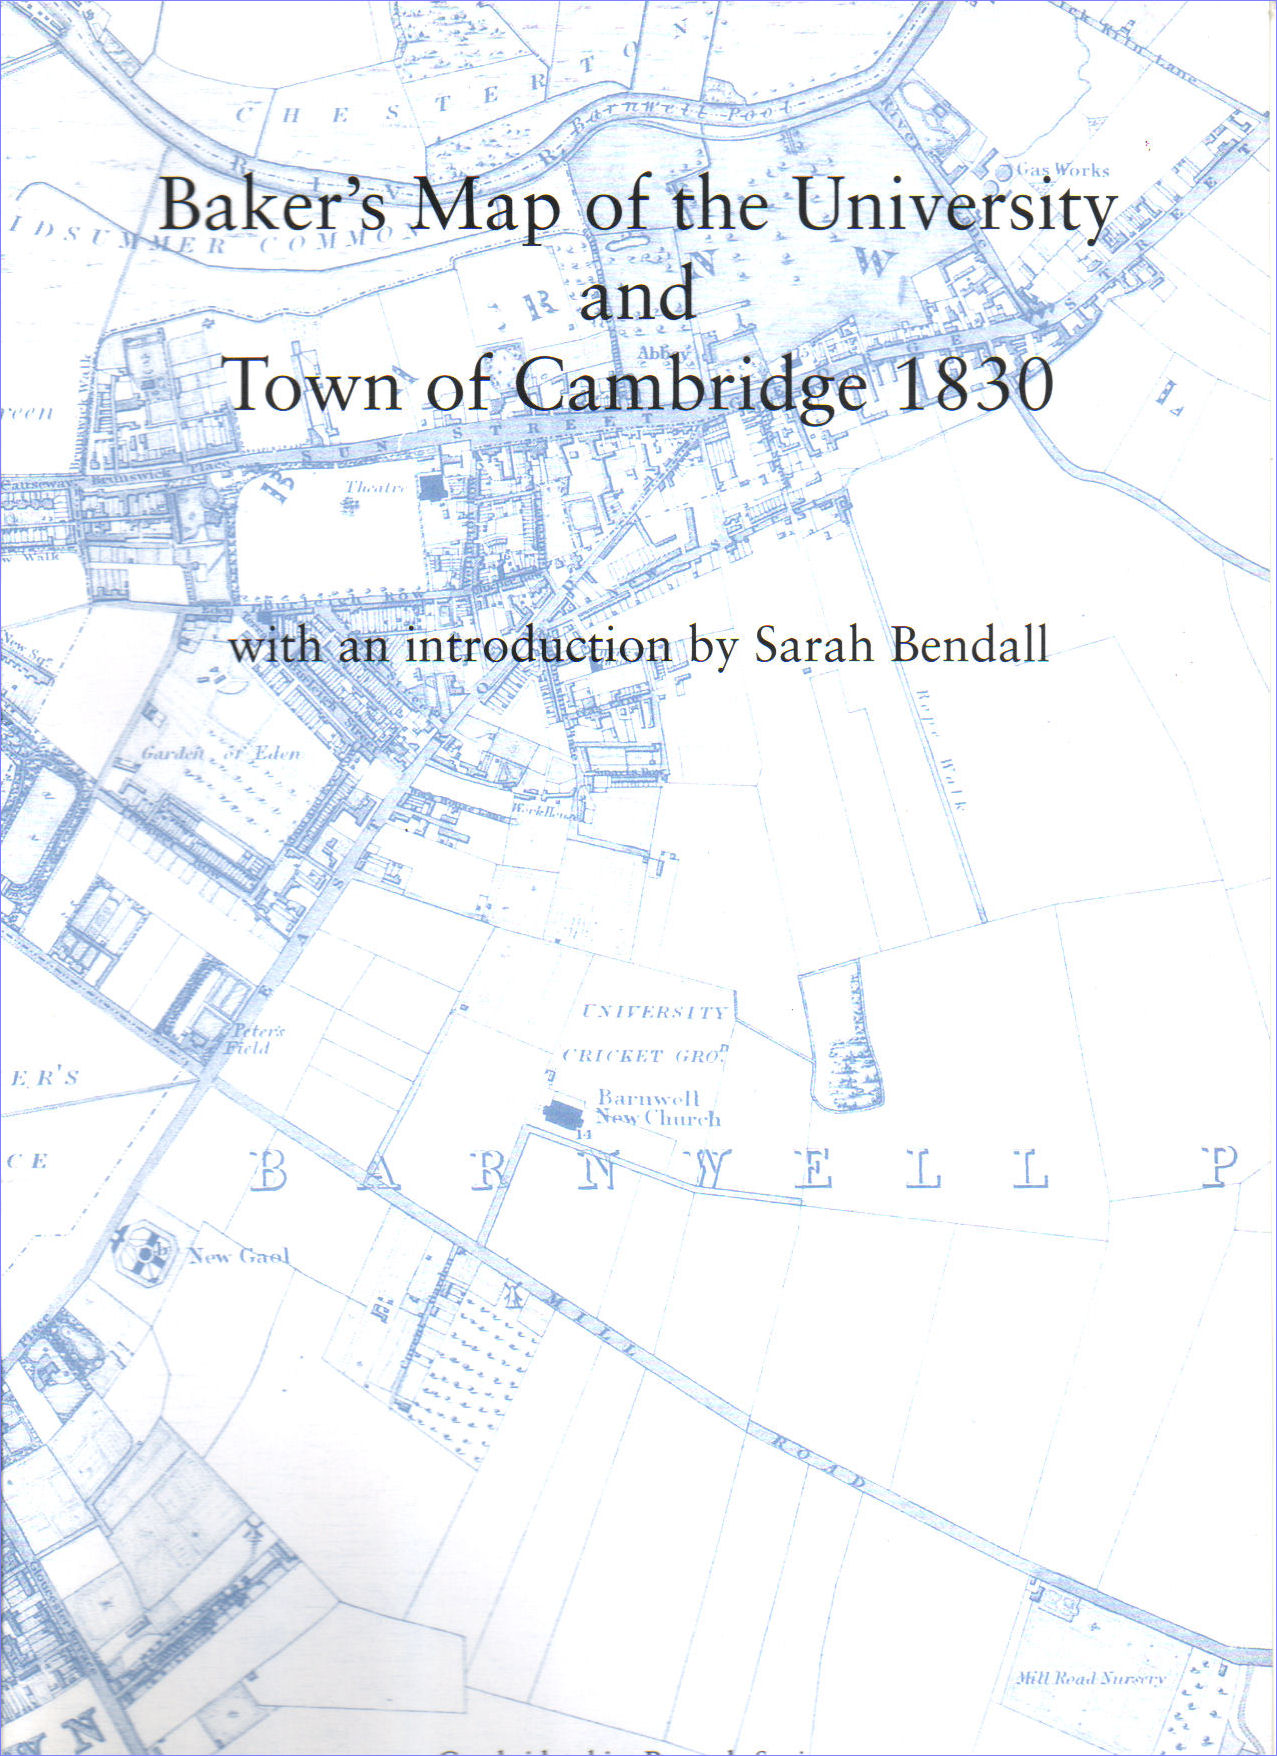 13. OUT OF PRINT. Baker's New Map of the Town and University of Cambridge, 1830. Reprinted with an introduction by Sarah Bendall.